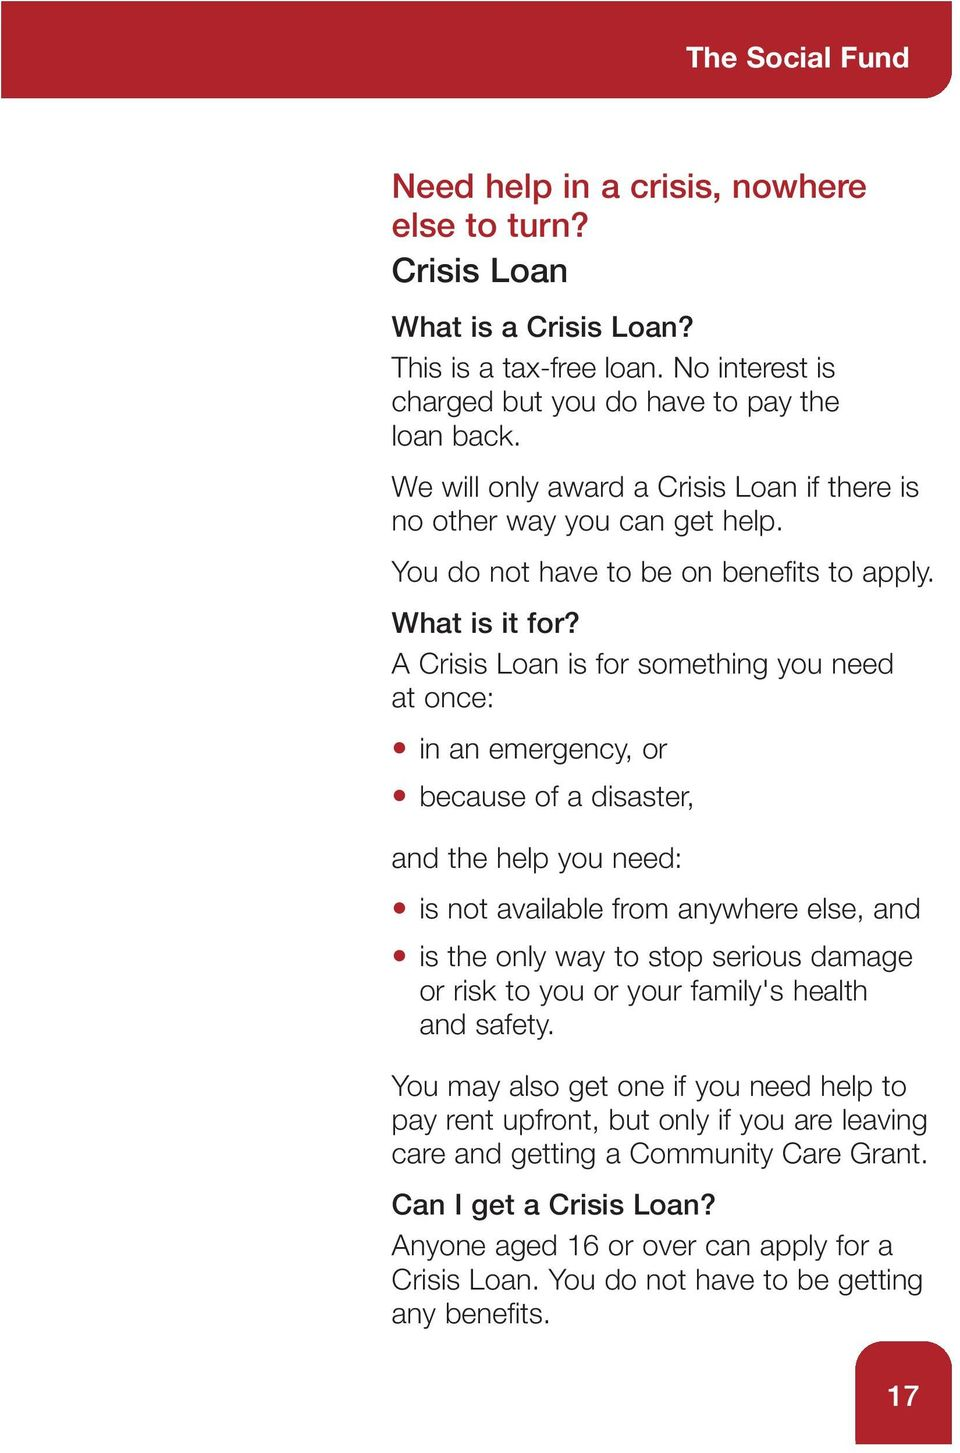 A Crisis Loan is for something you need at once: in an emergency, or because of a disaster, and the help you need: is not available from anywhere else, and is the only way to stop serious damage or